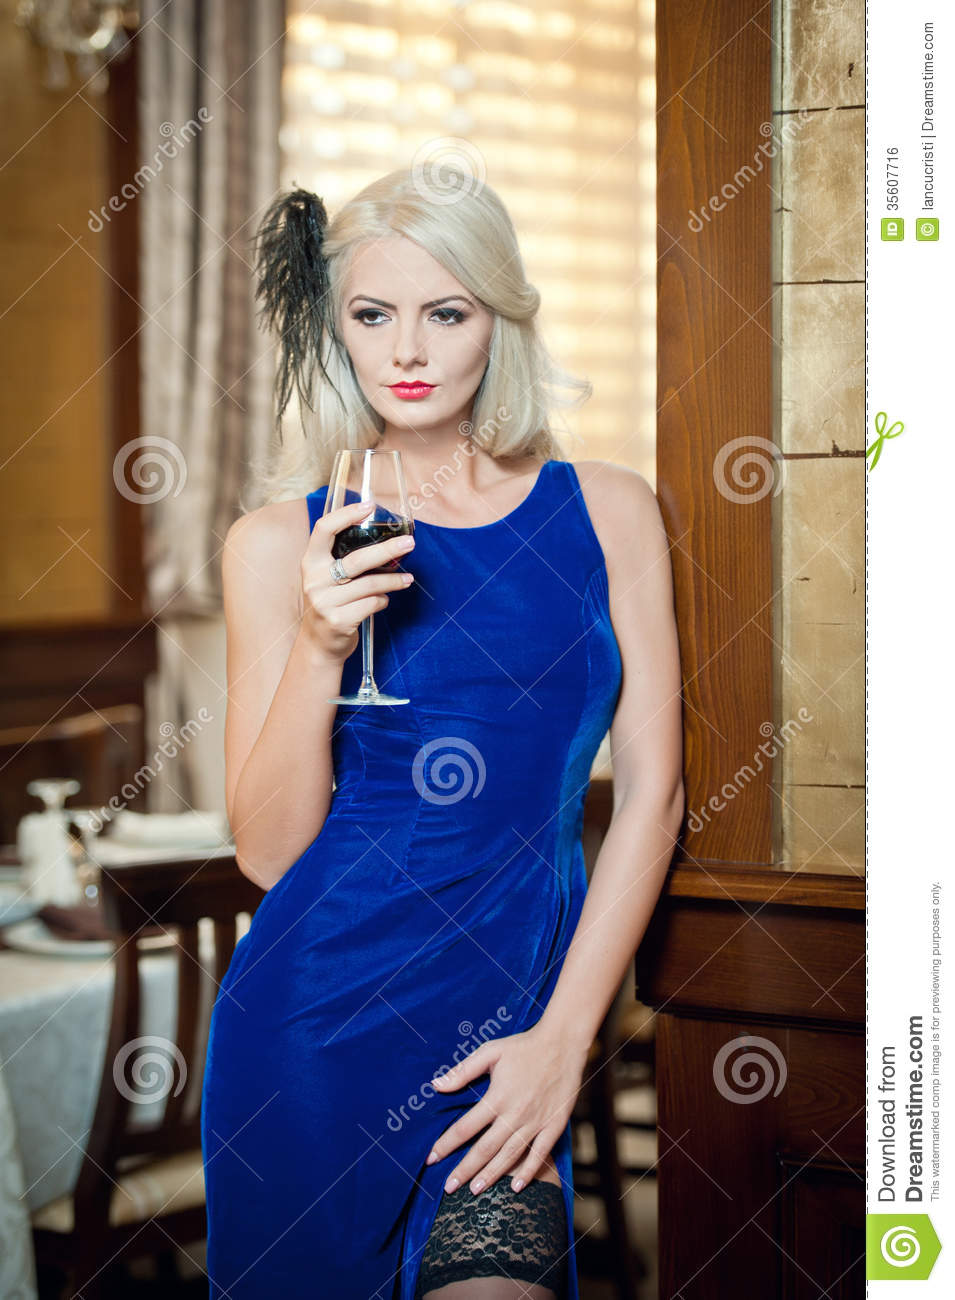 Blue Dress with Glass